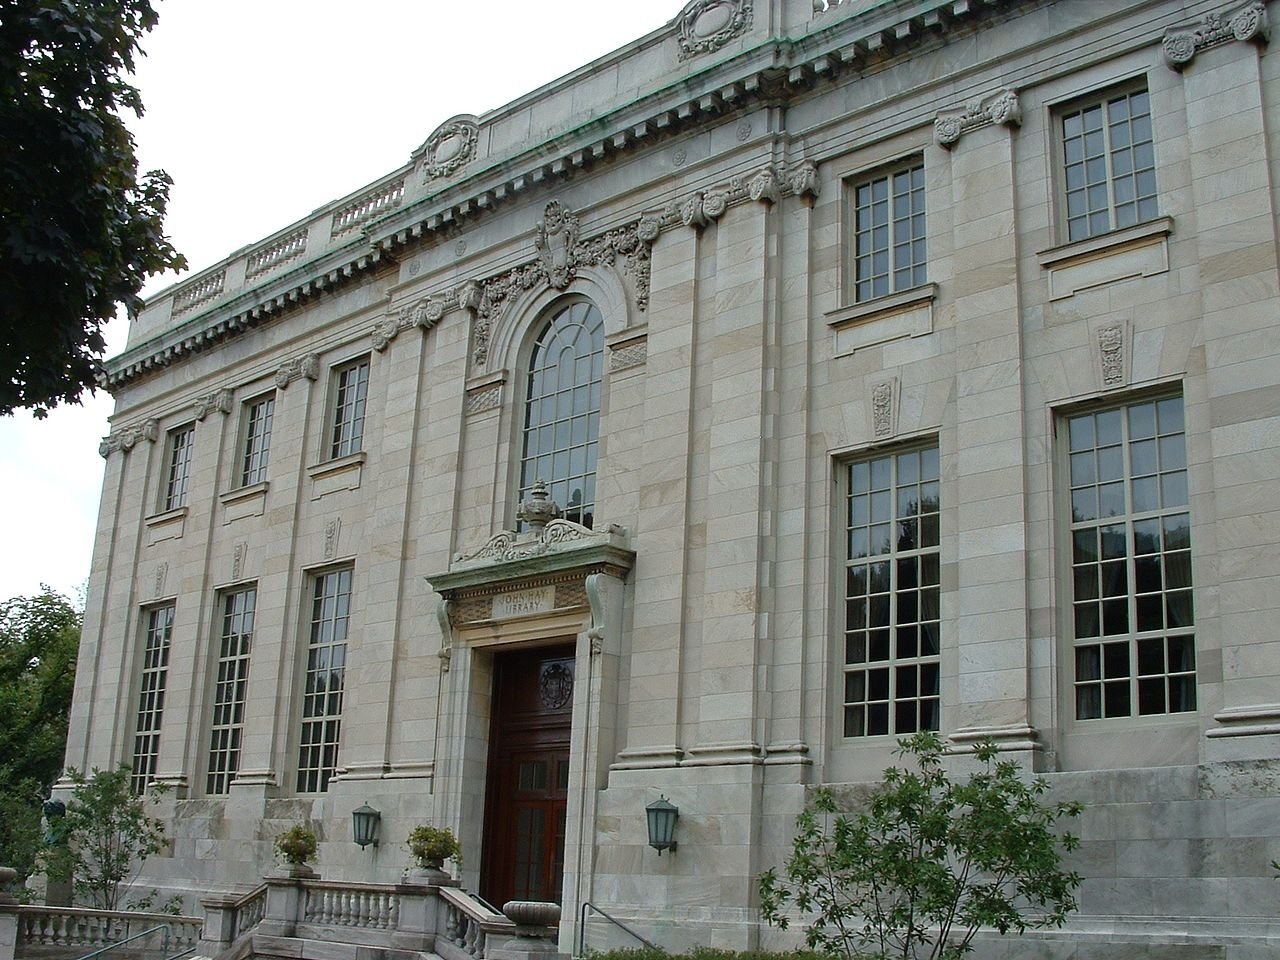 The John Hay library, built in 1910.